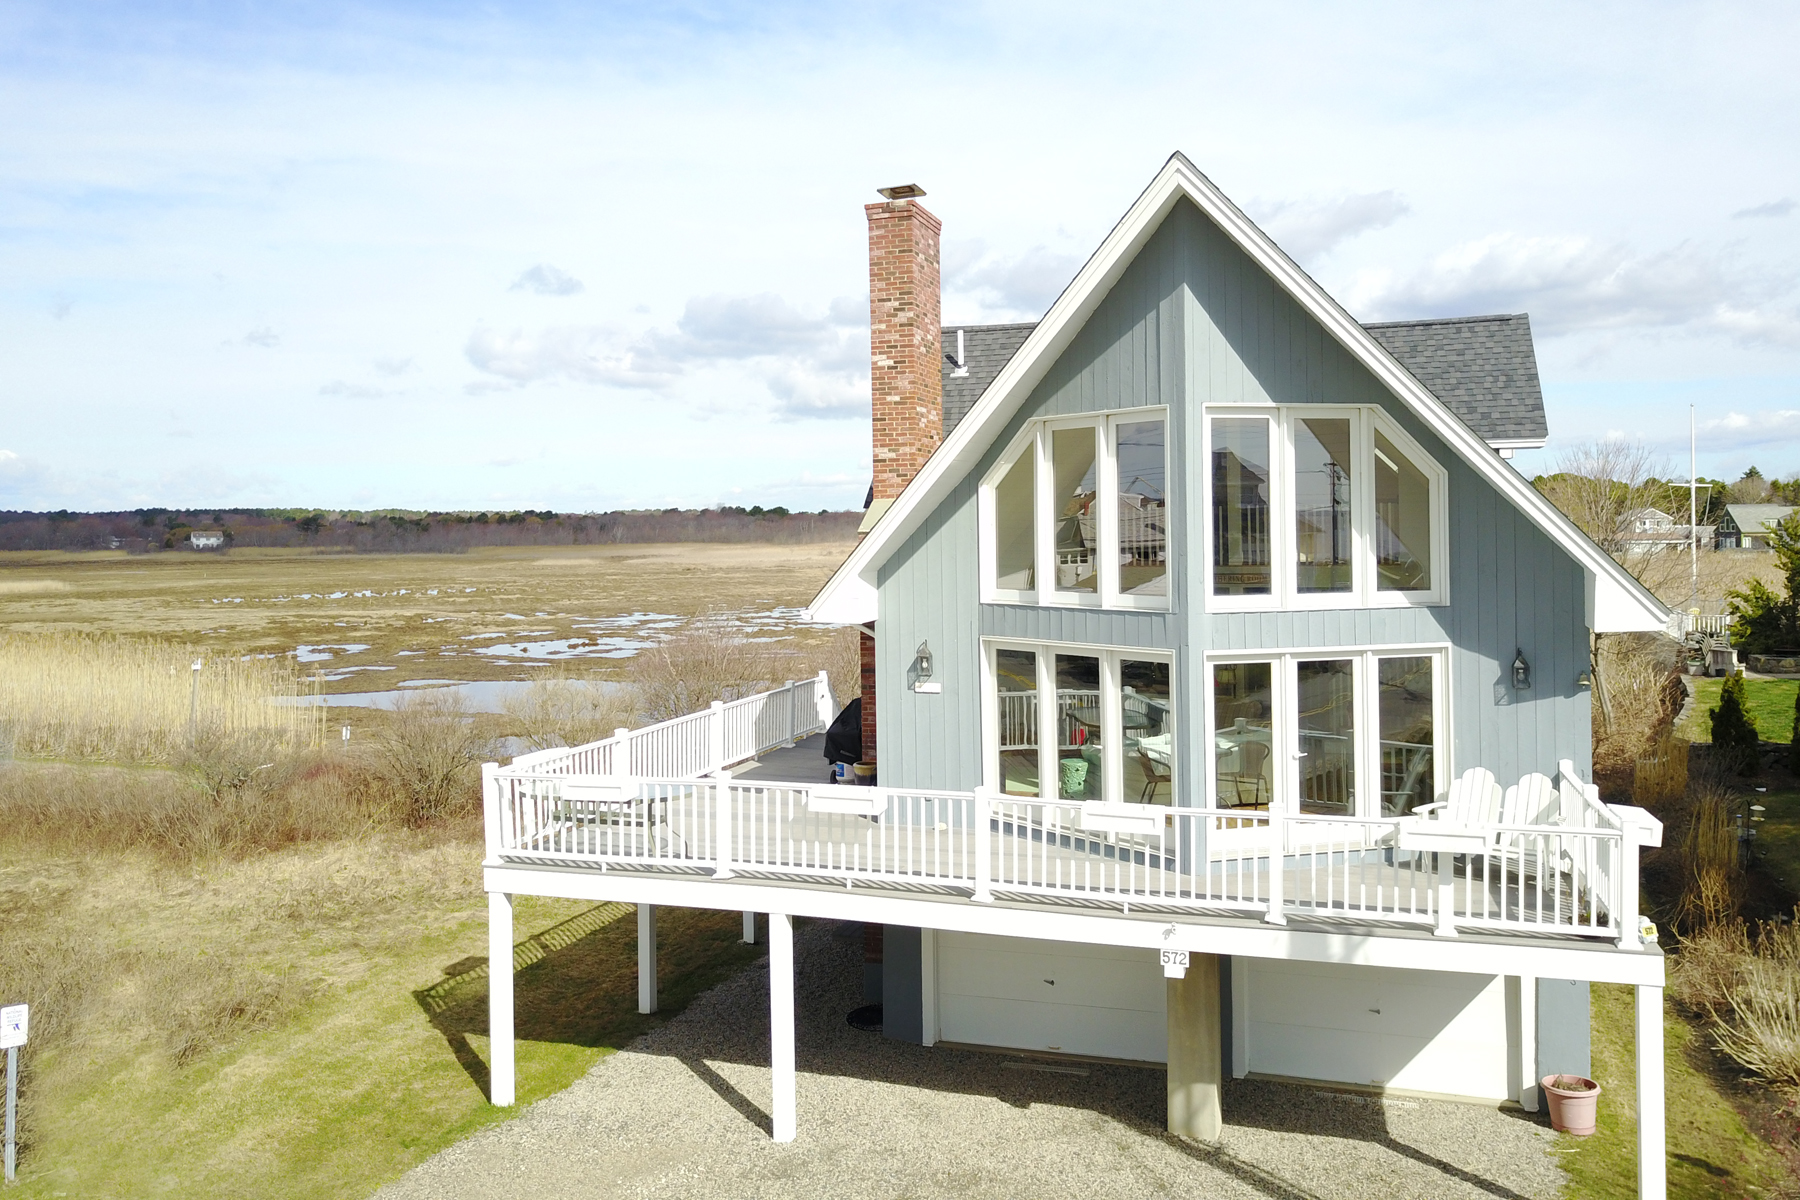 Casa Unifamiliar por un Venta en Stunning Ocean View Contemporary in Moody 572 Ocean Avenue Wells, Maine 04090 Estados Unidos